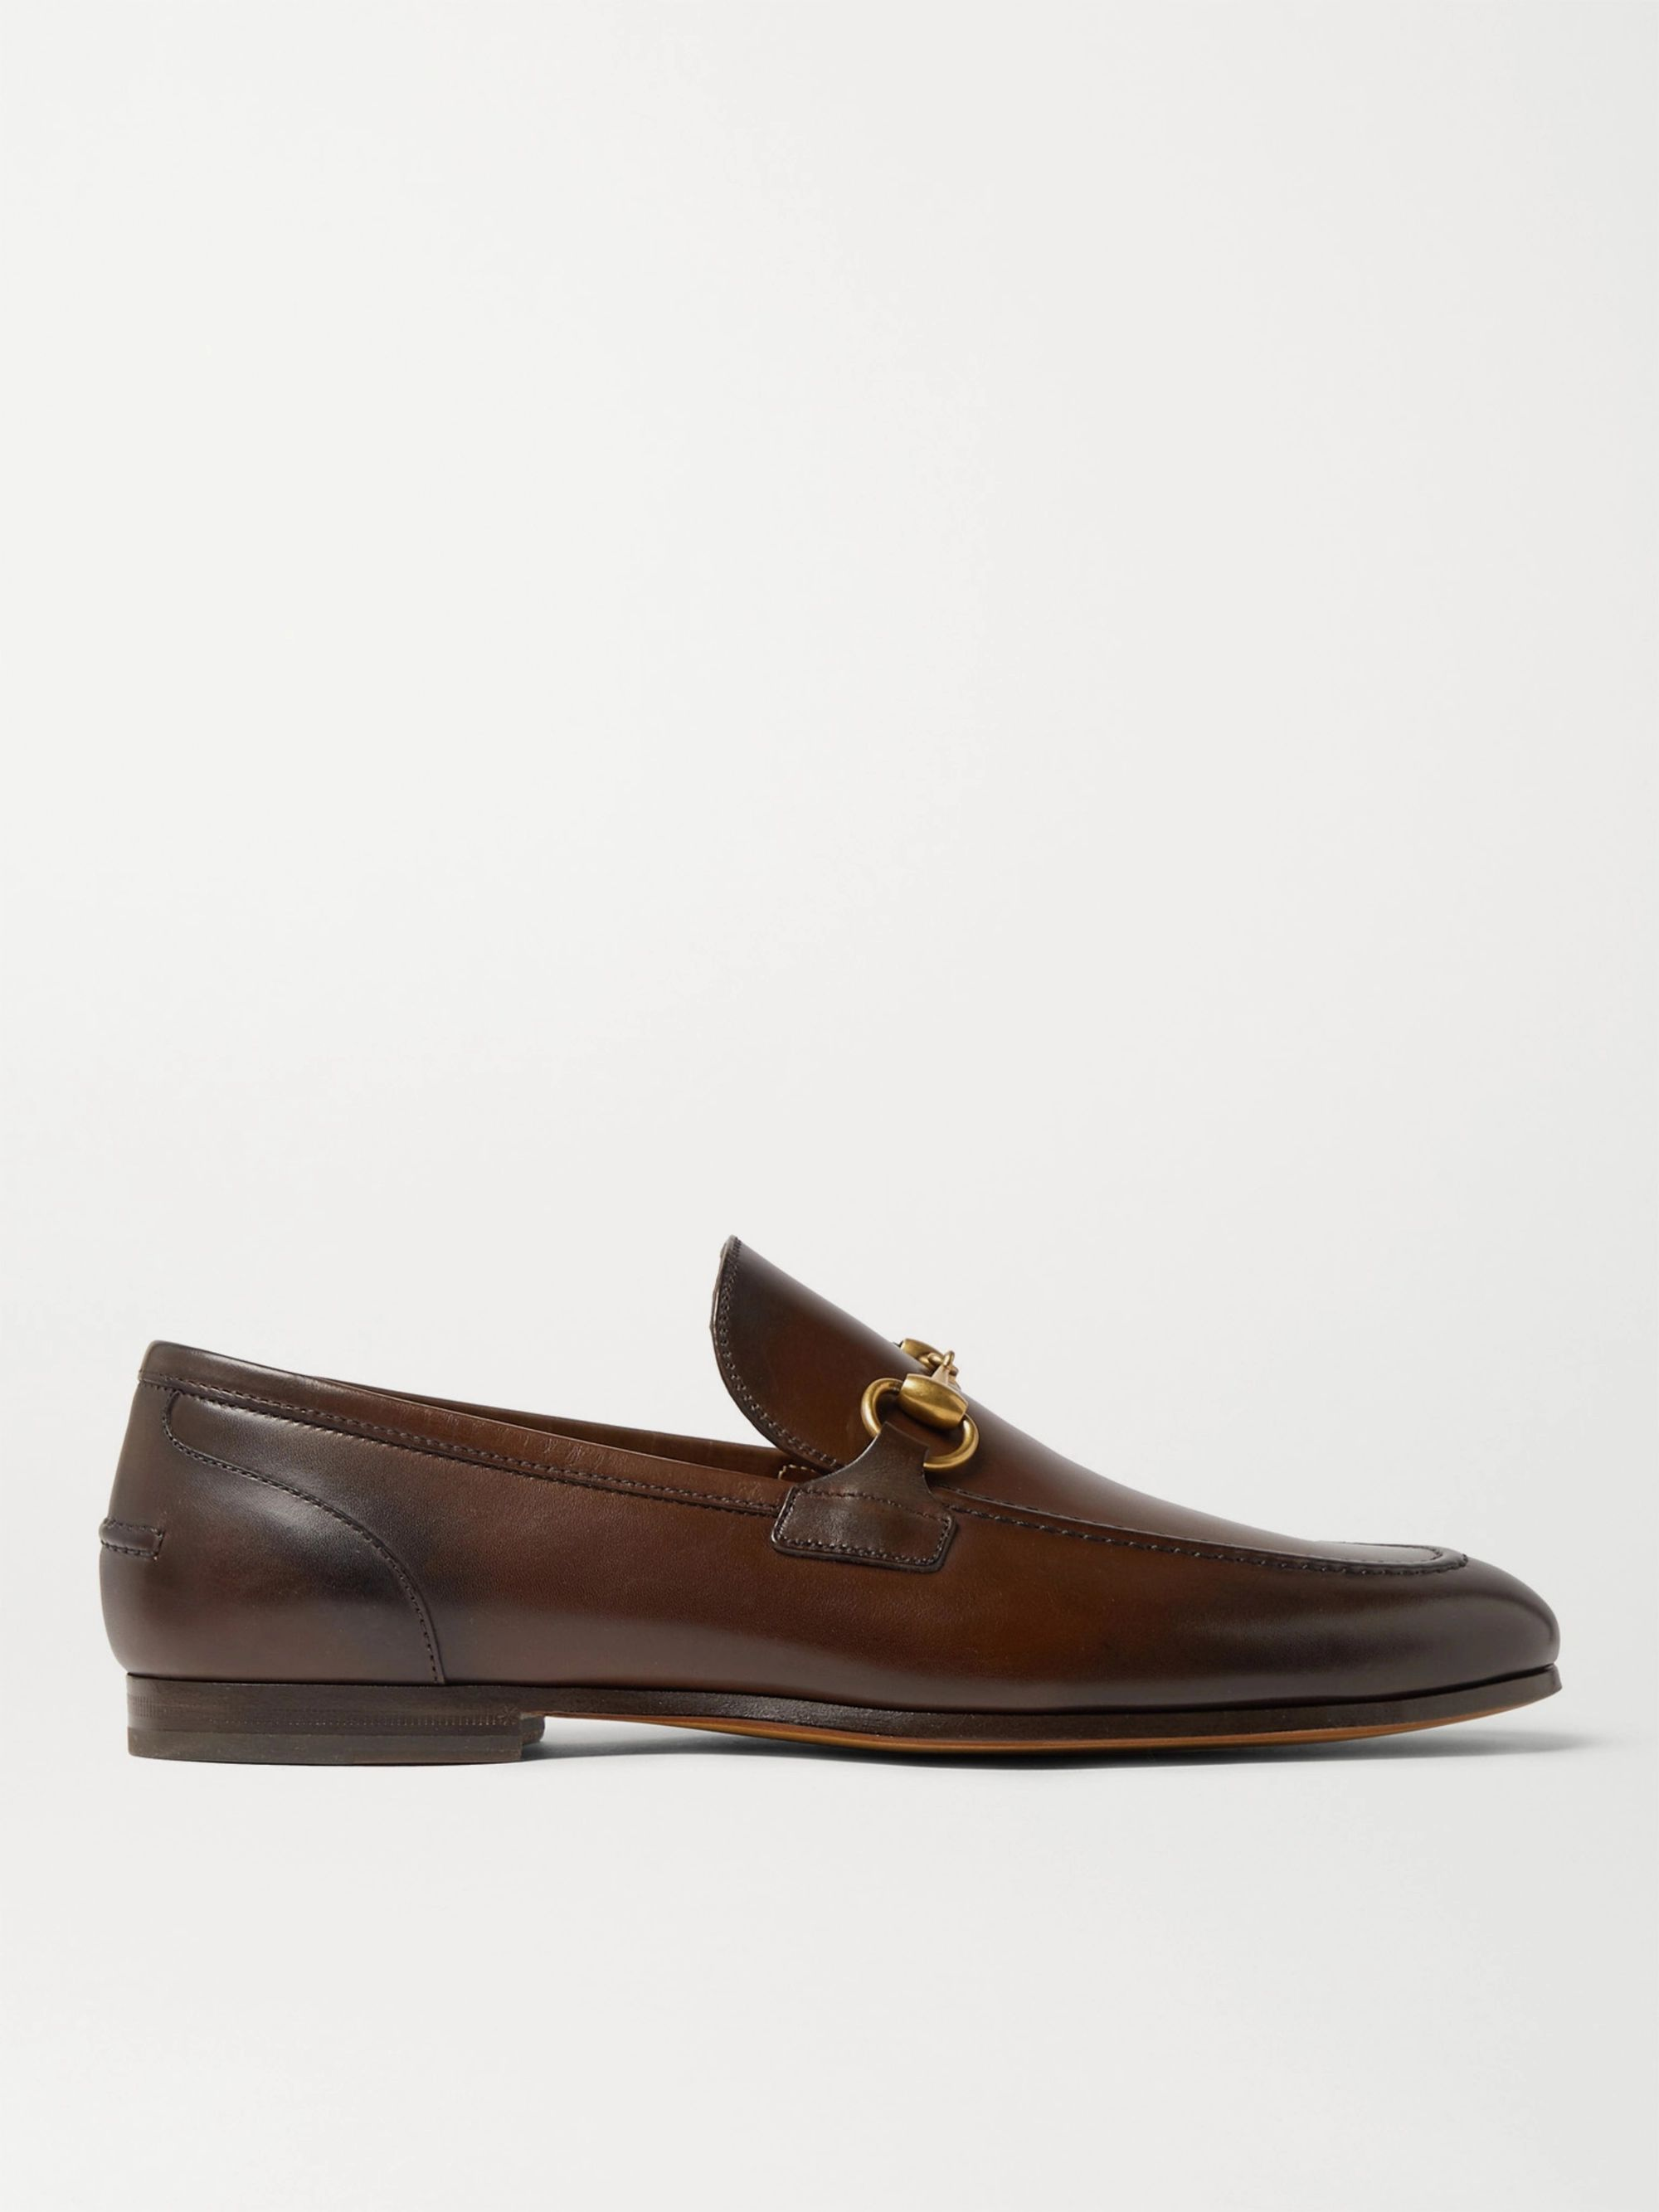 GUCCI Horsebit Leather Loafers